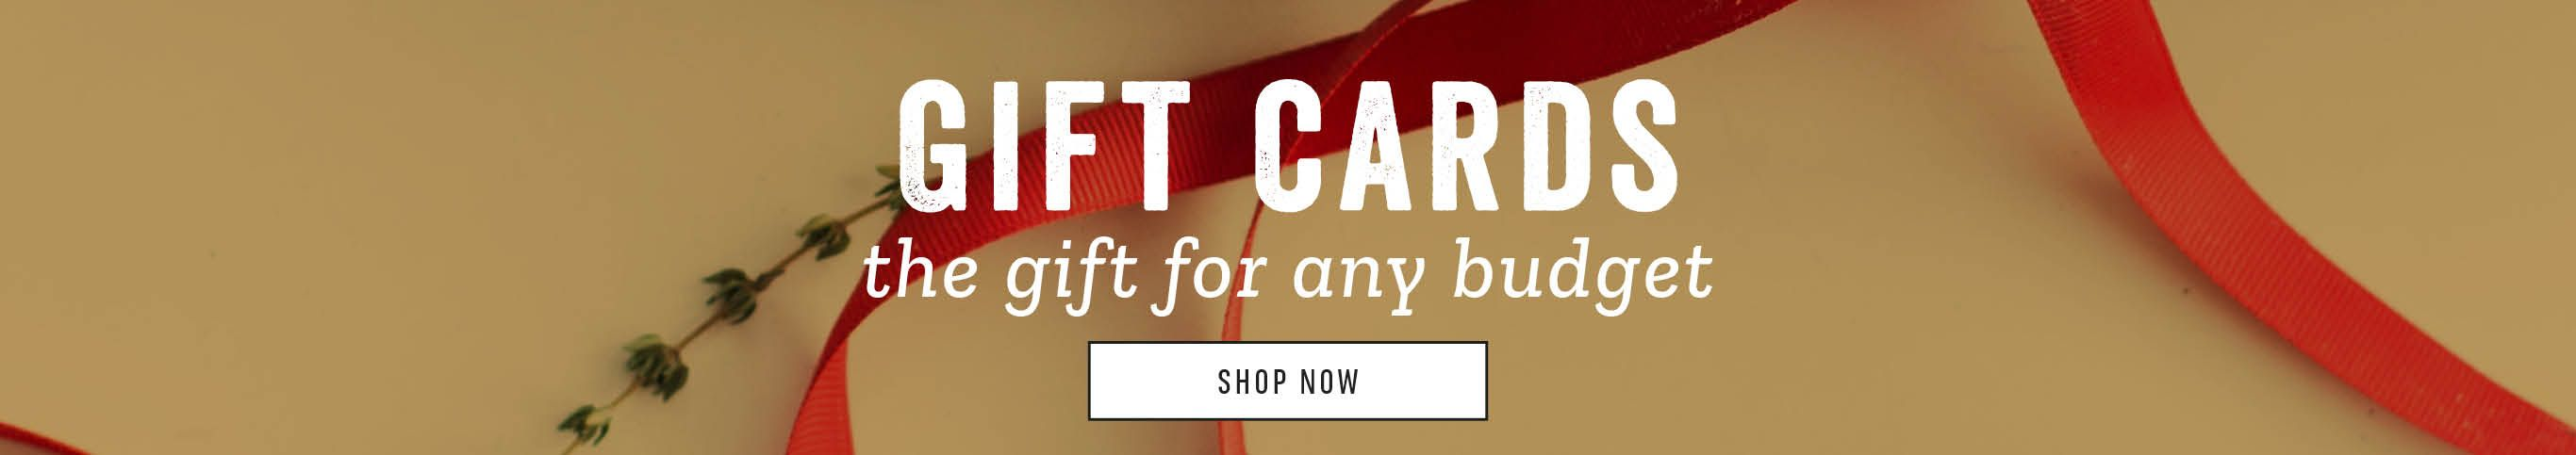 Gift Cards. The Gift for any Budget. Shop Now.